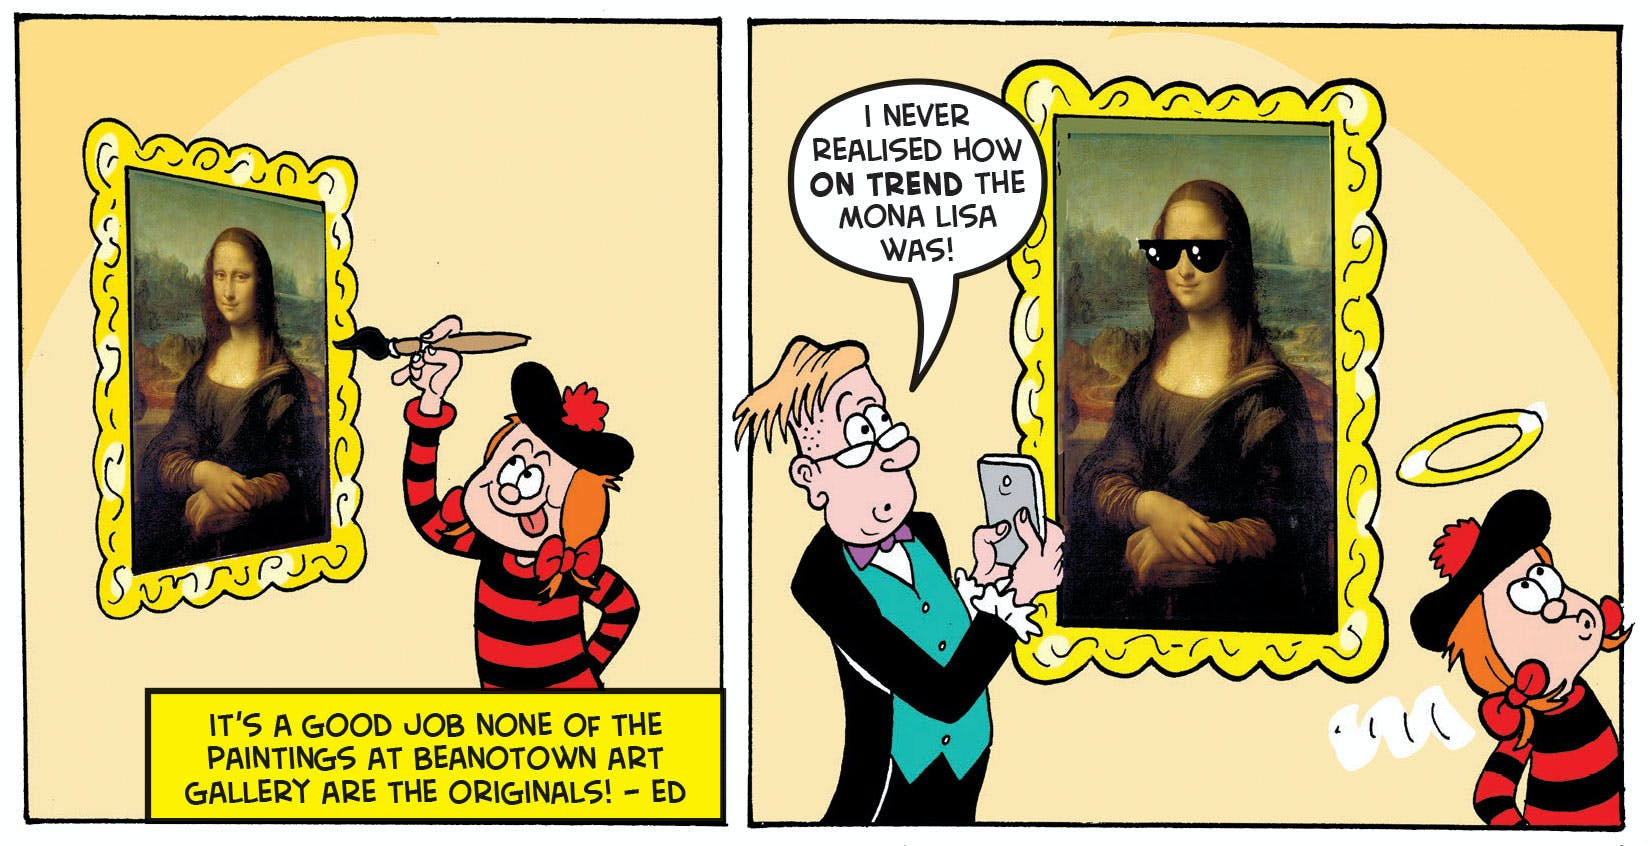 Minnie messes with the art gallery